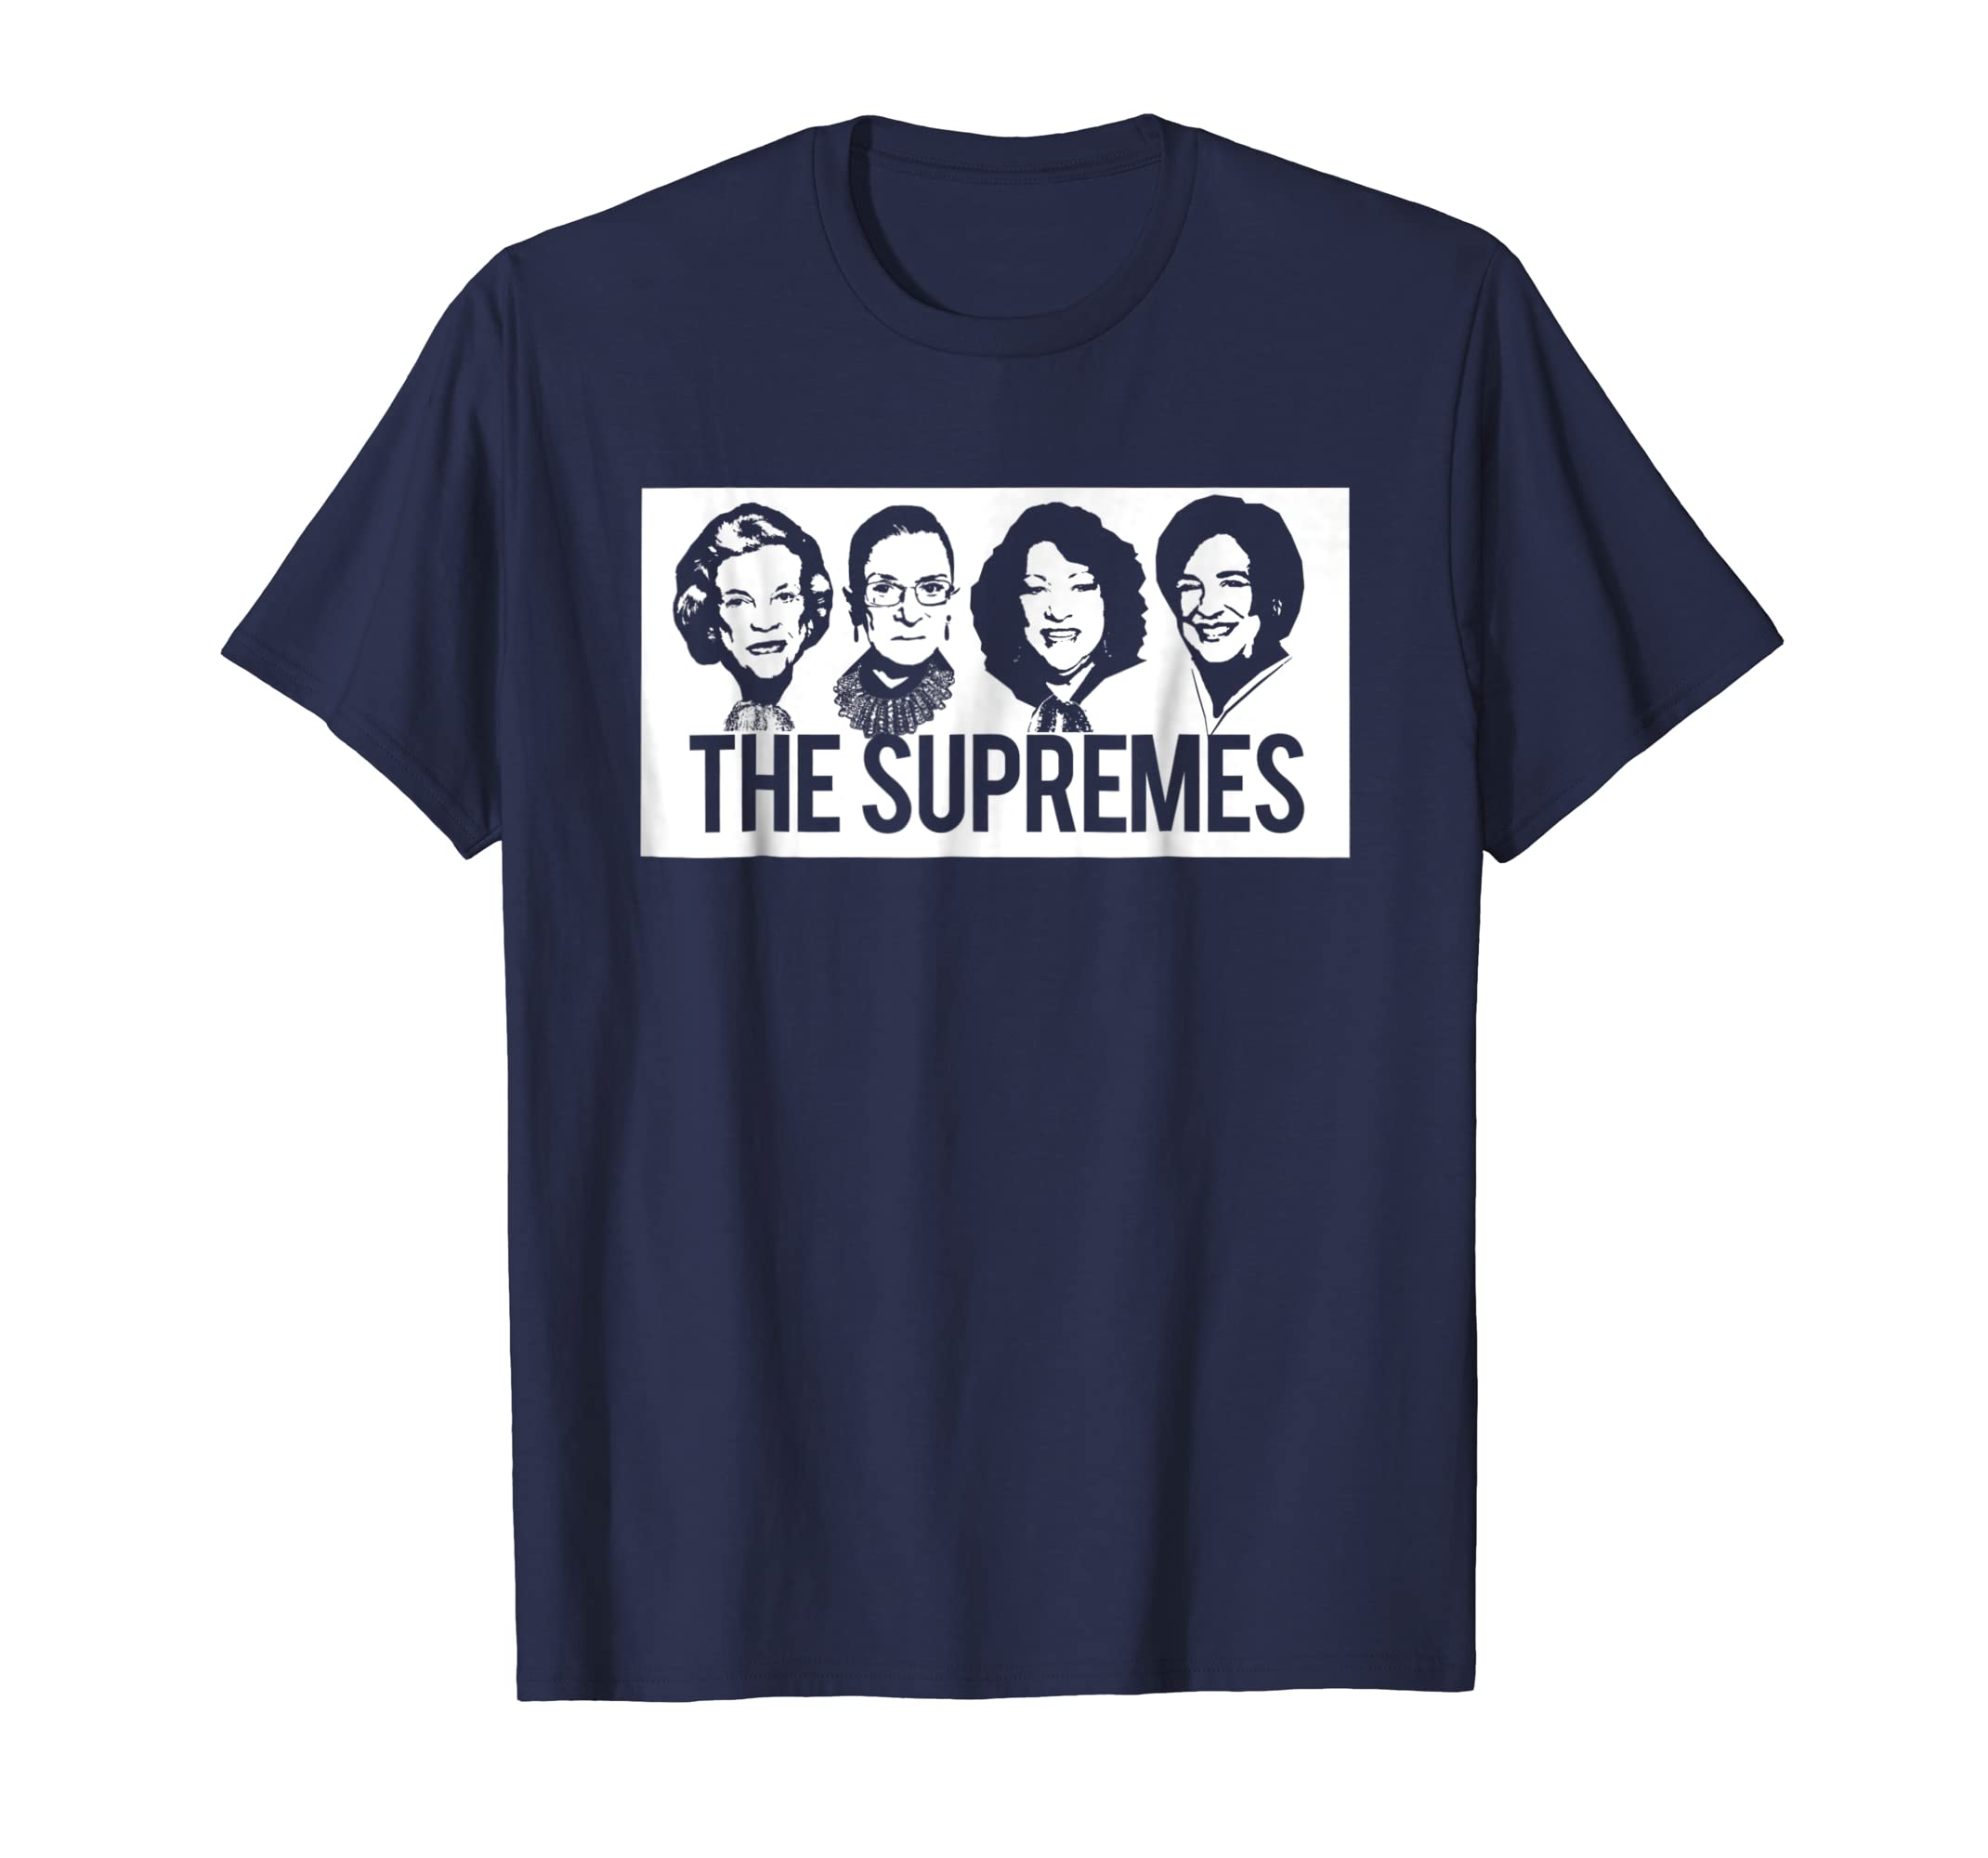 a5908ae741e3 Amazon.com: THE SUPREMES Supreme Court Justices RBG Feminist T-Shirt Hip:  Clothing